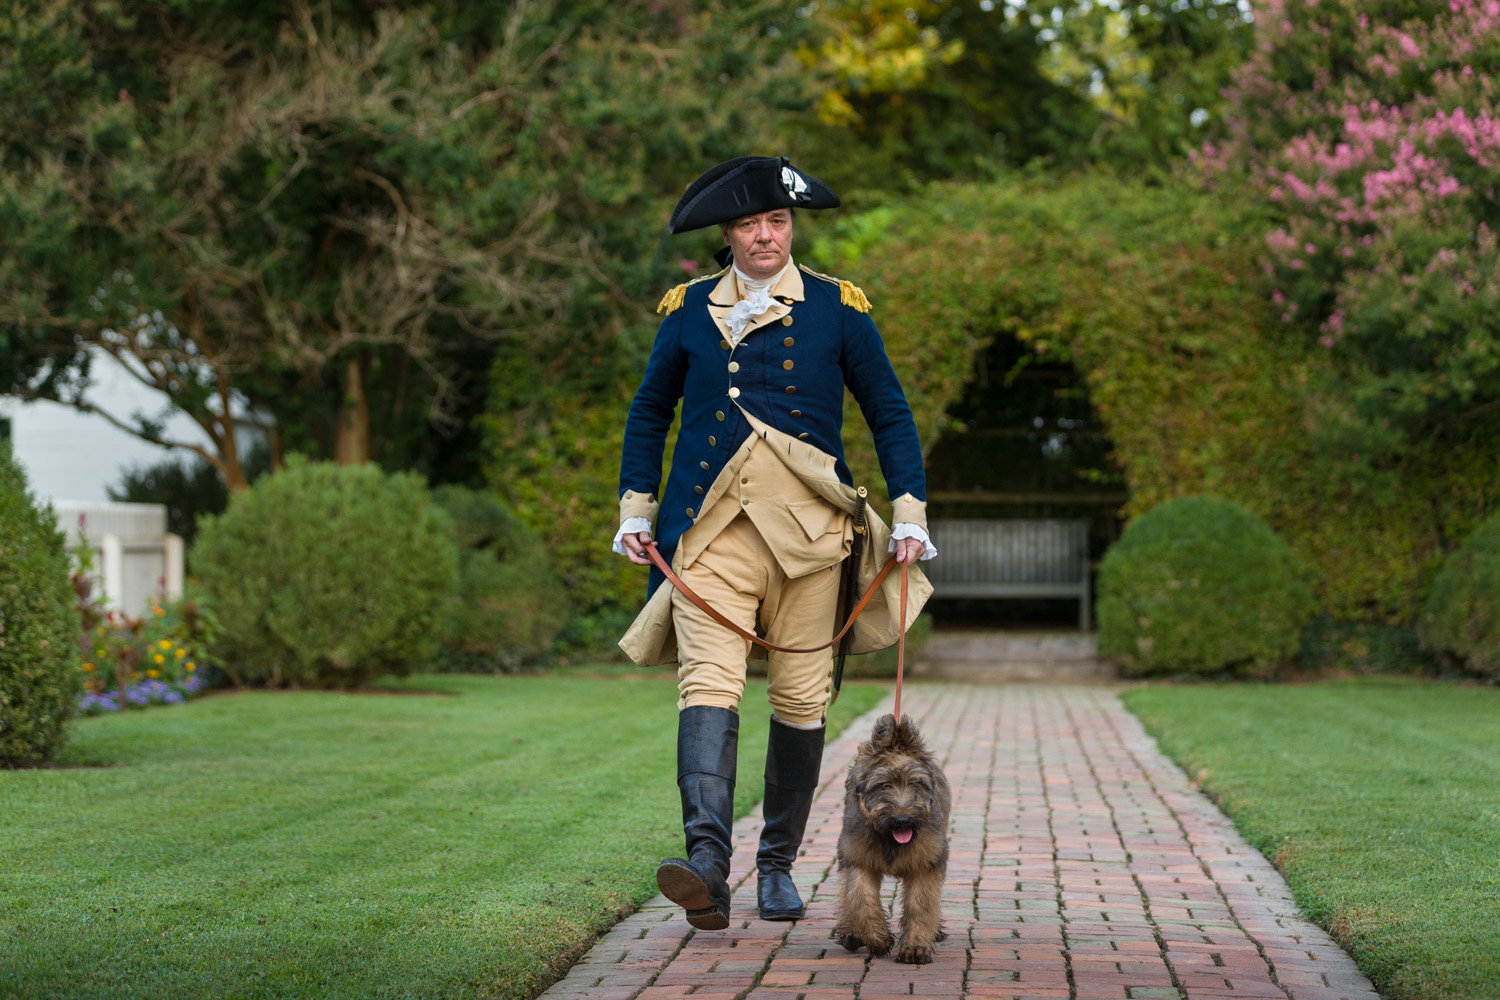 Briard puppy Liberty will act as Colonial Williamsburg's new mascot and reenactor, portraying George Washington's dog. COURTESY PHOTO / THE COLONIAL WILLIAMSBURG FOUNDATION